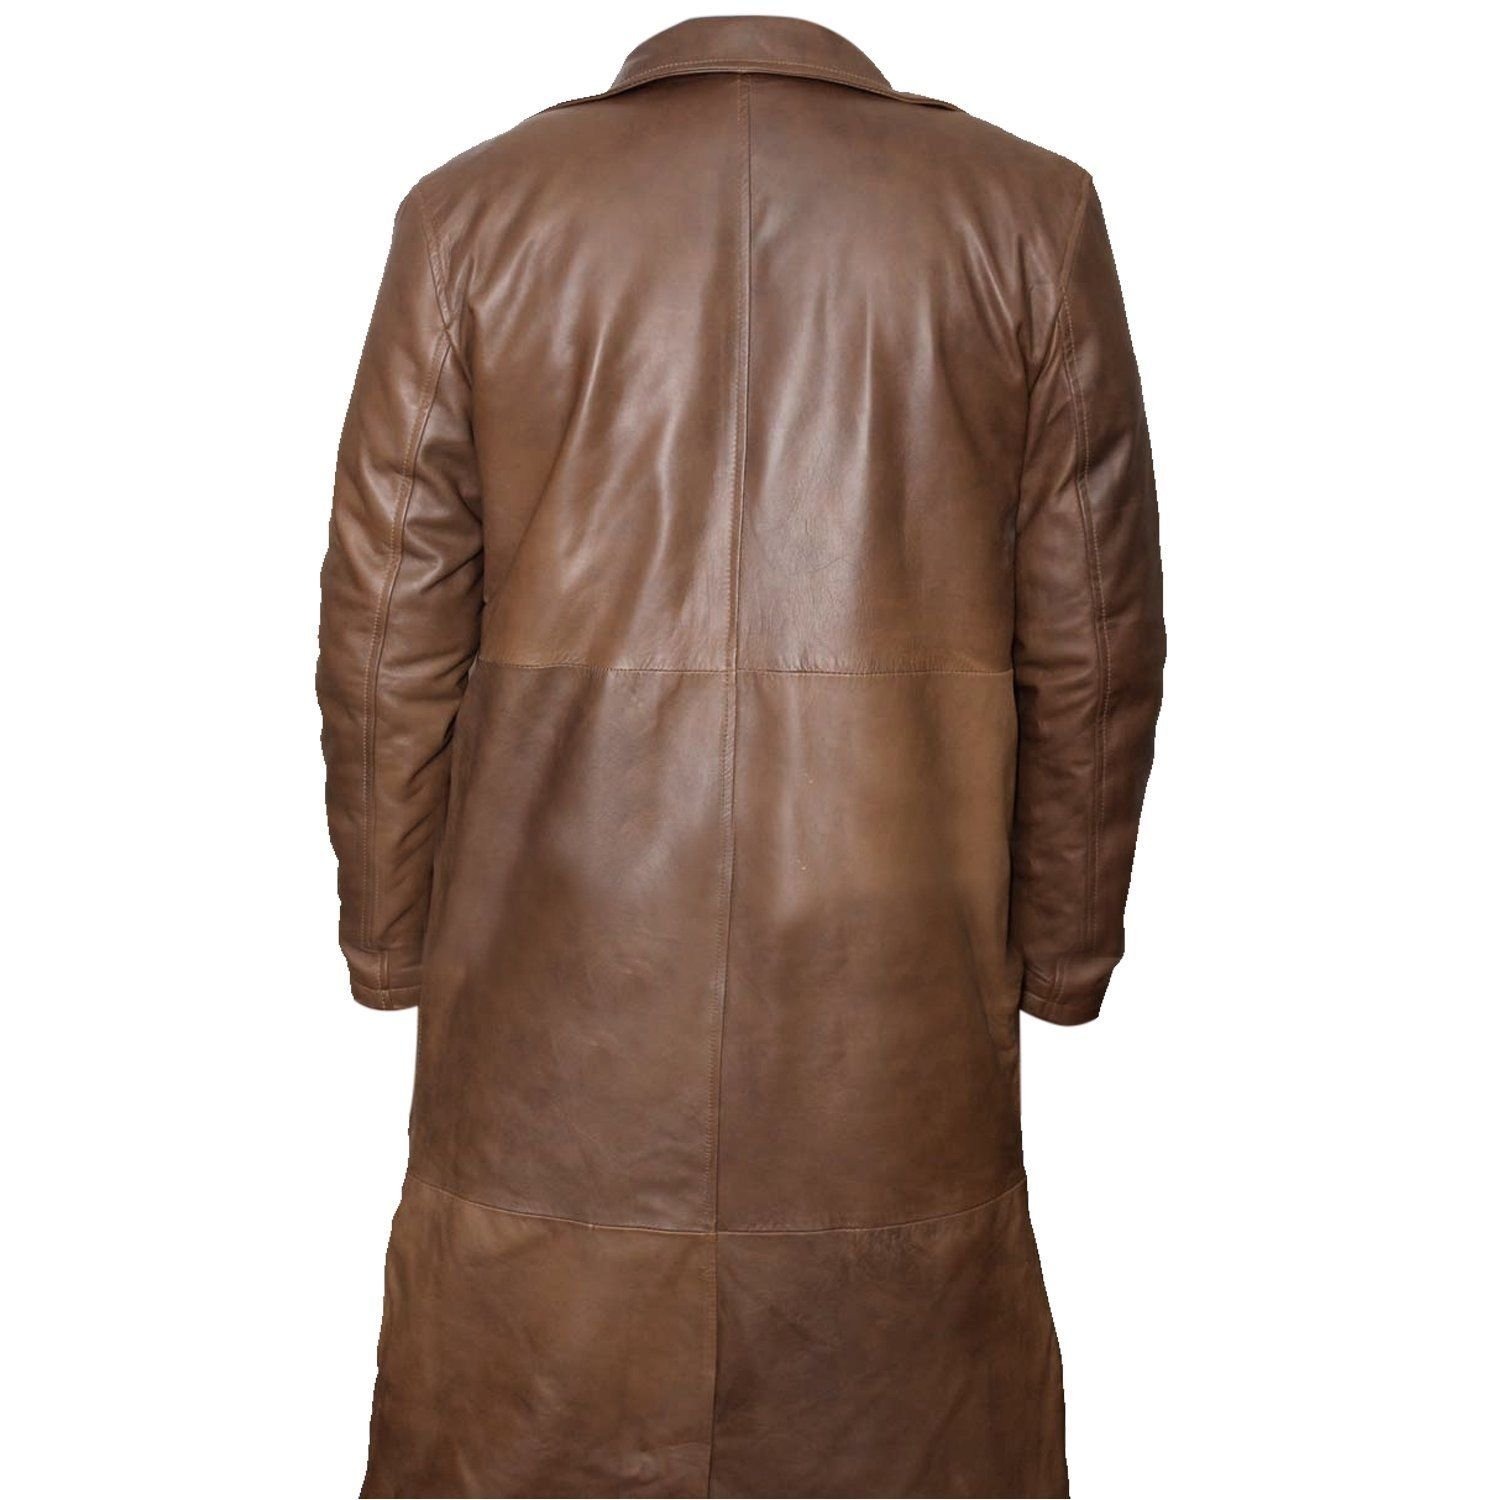 Premium Leather Products Batman V Superman Dawn Of Justice - Distressed Brown Leather Trench Coat (XXX-Large) by Premium Leather Products (Image #3)